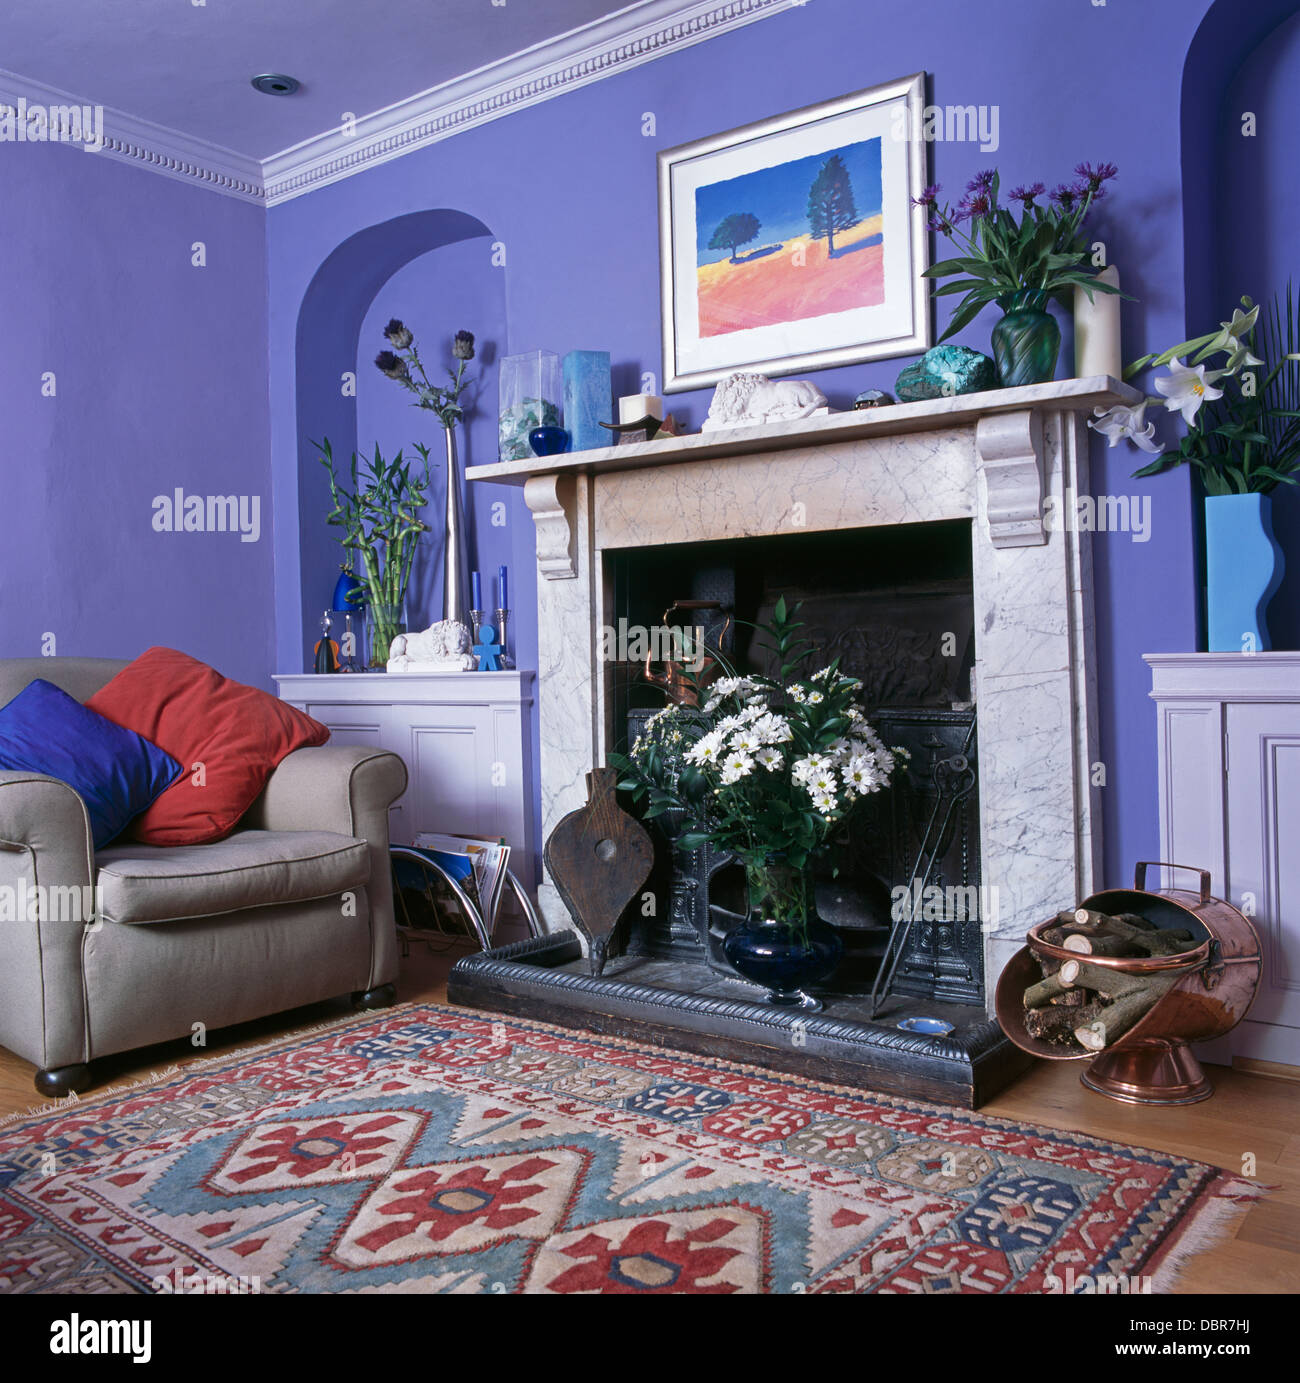 Patterned Rug In Front Of Marble Fireplace In Blue Living Room With Gray  Armchair With Red And Blue Cushions In Front Of Alcove